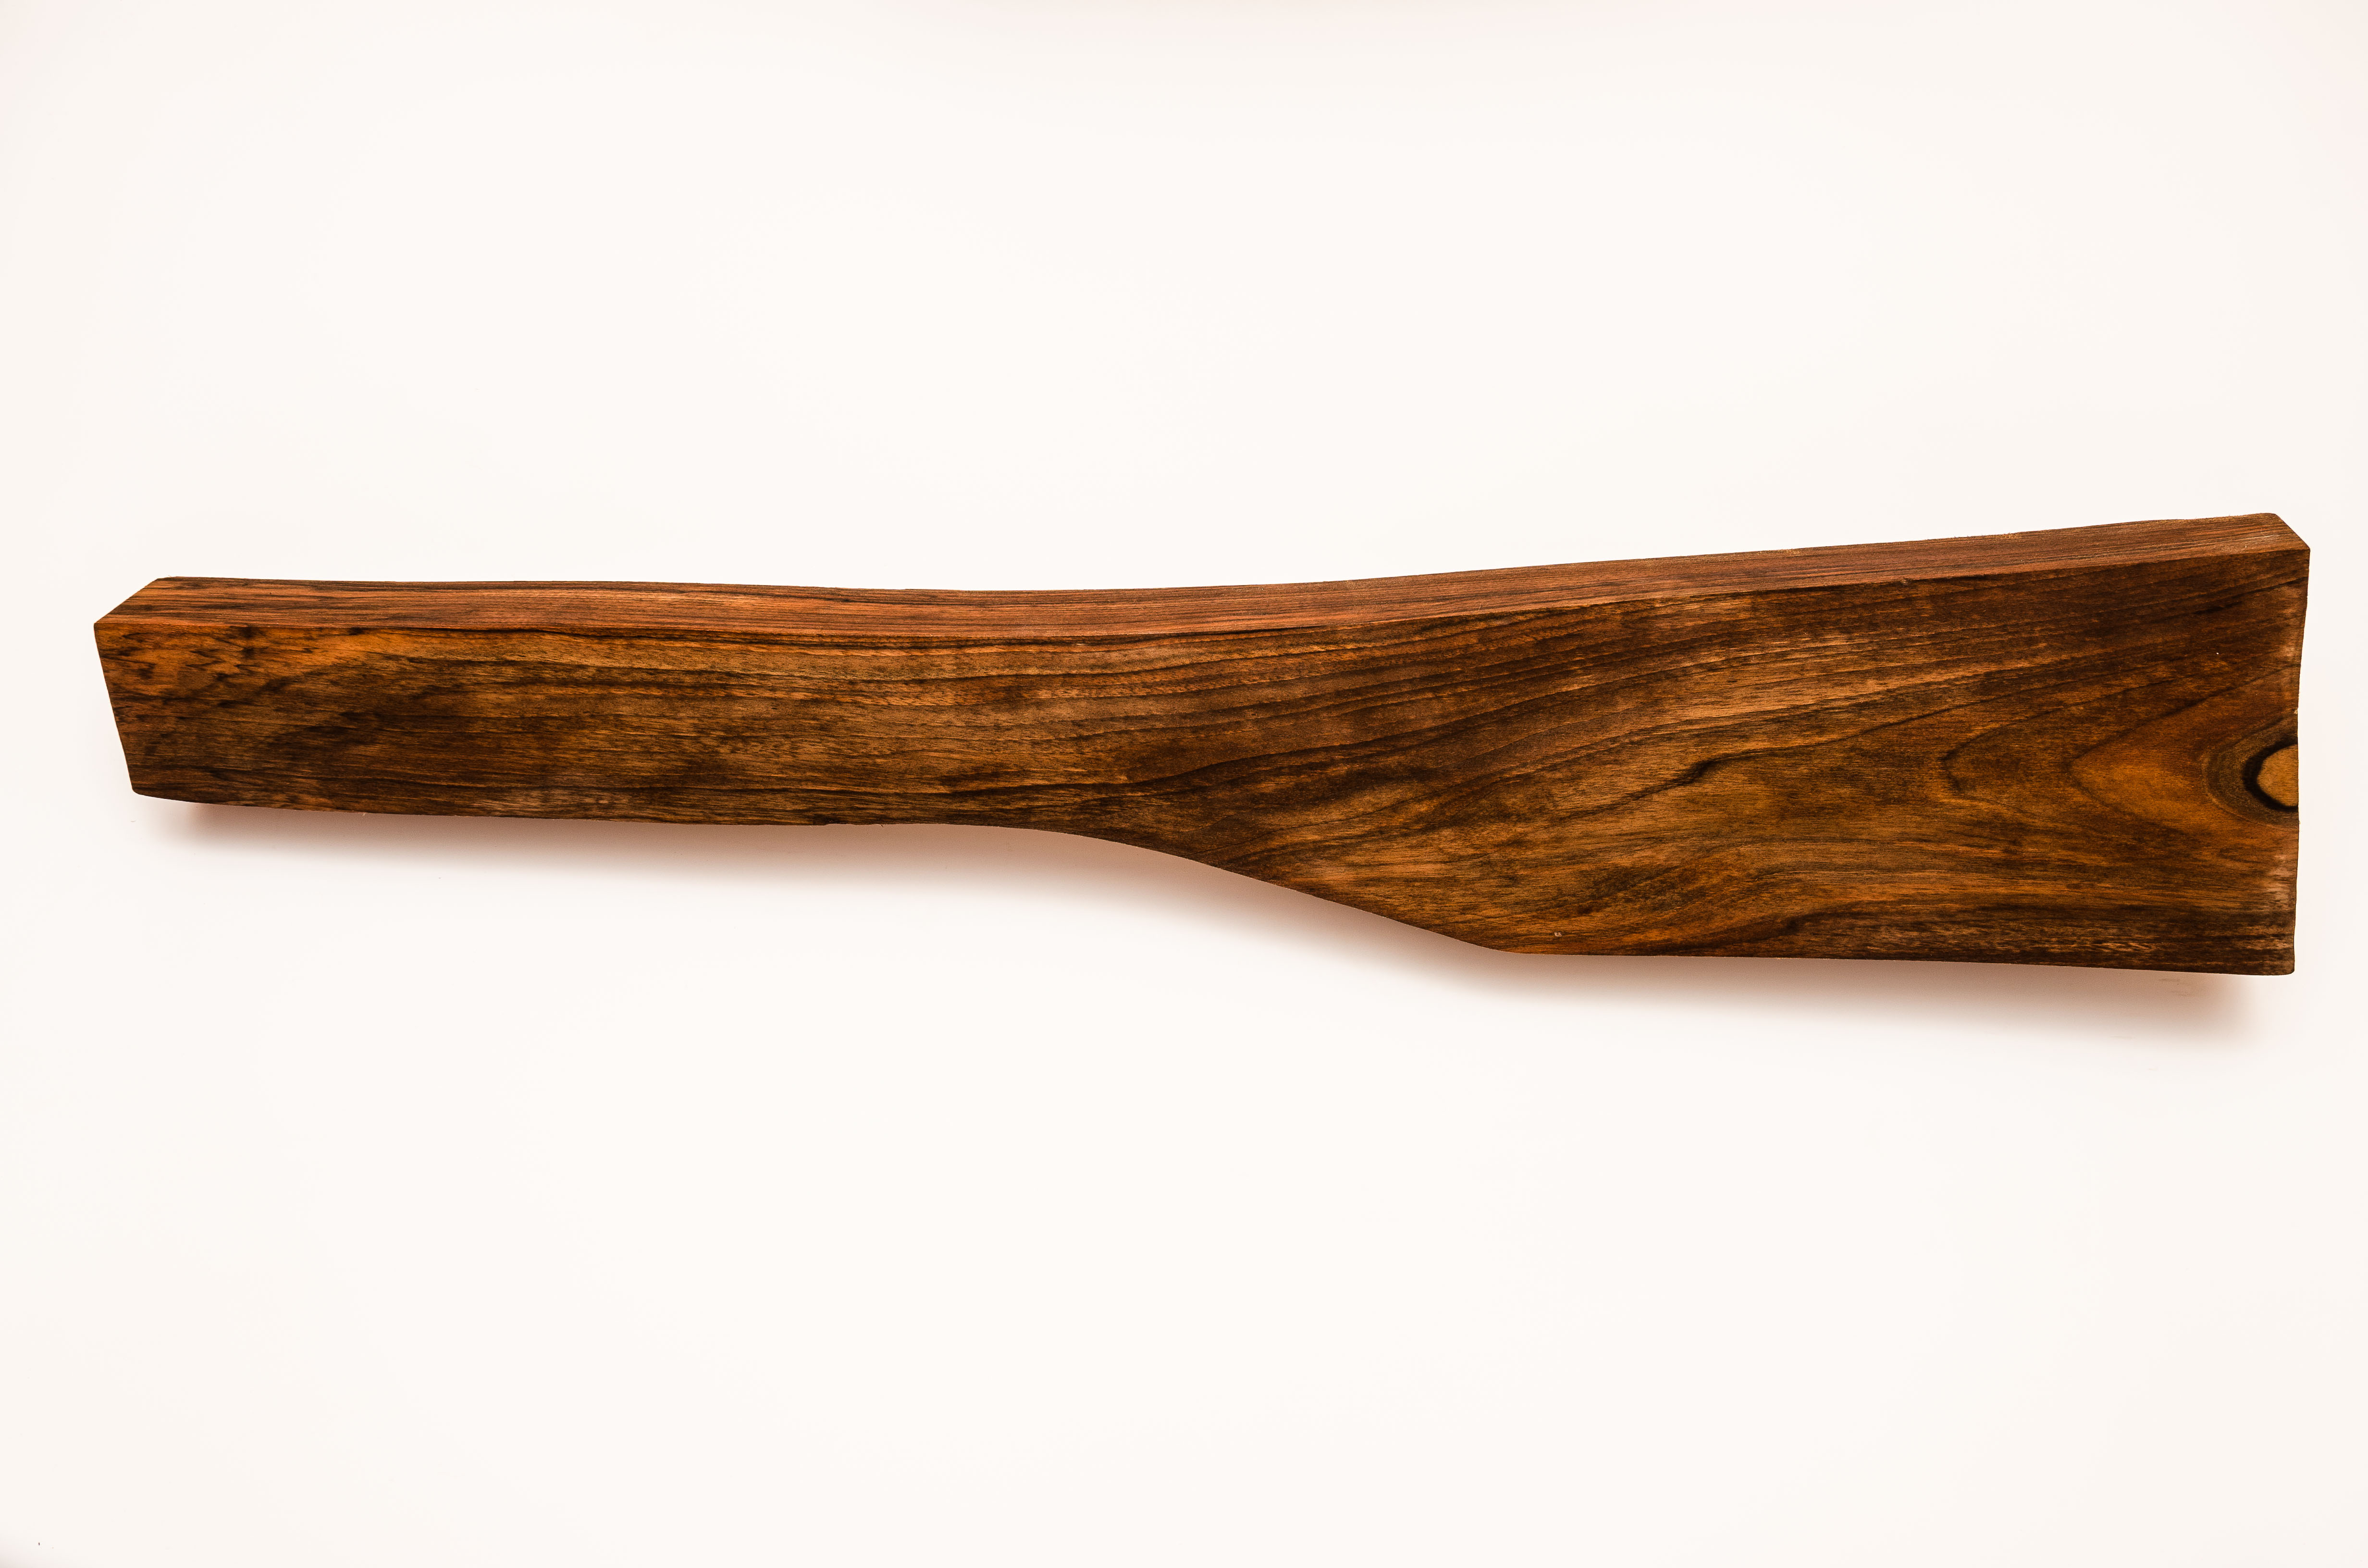 walnut_stock_blanks_for_guns_and_rifles-1283